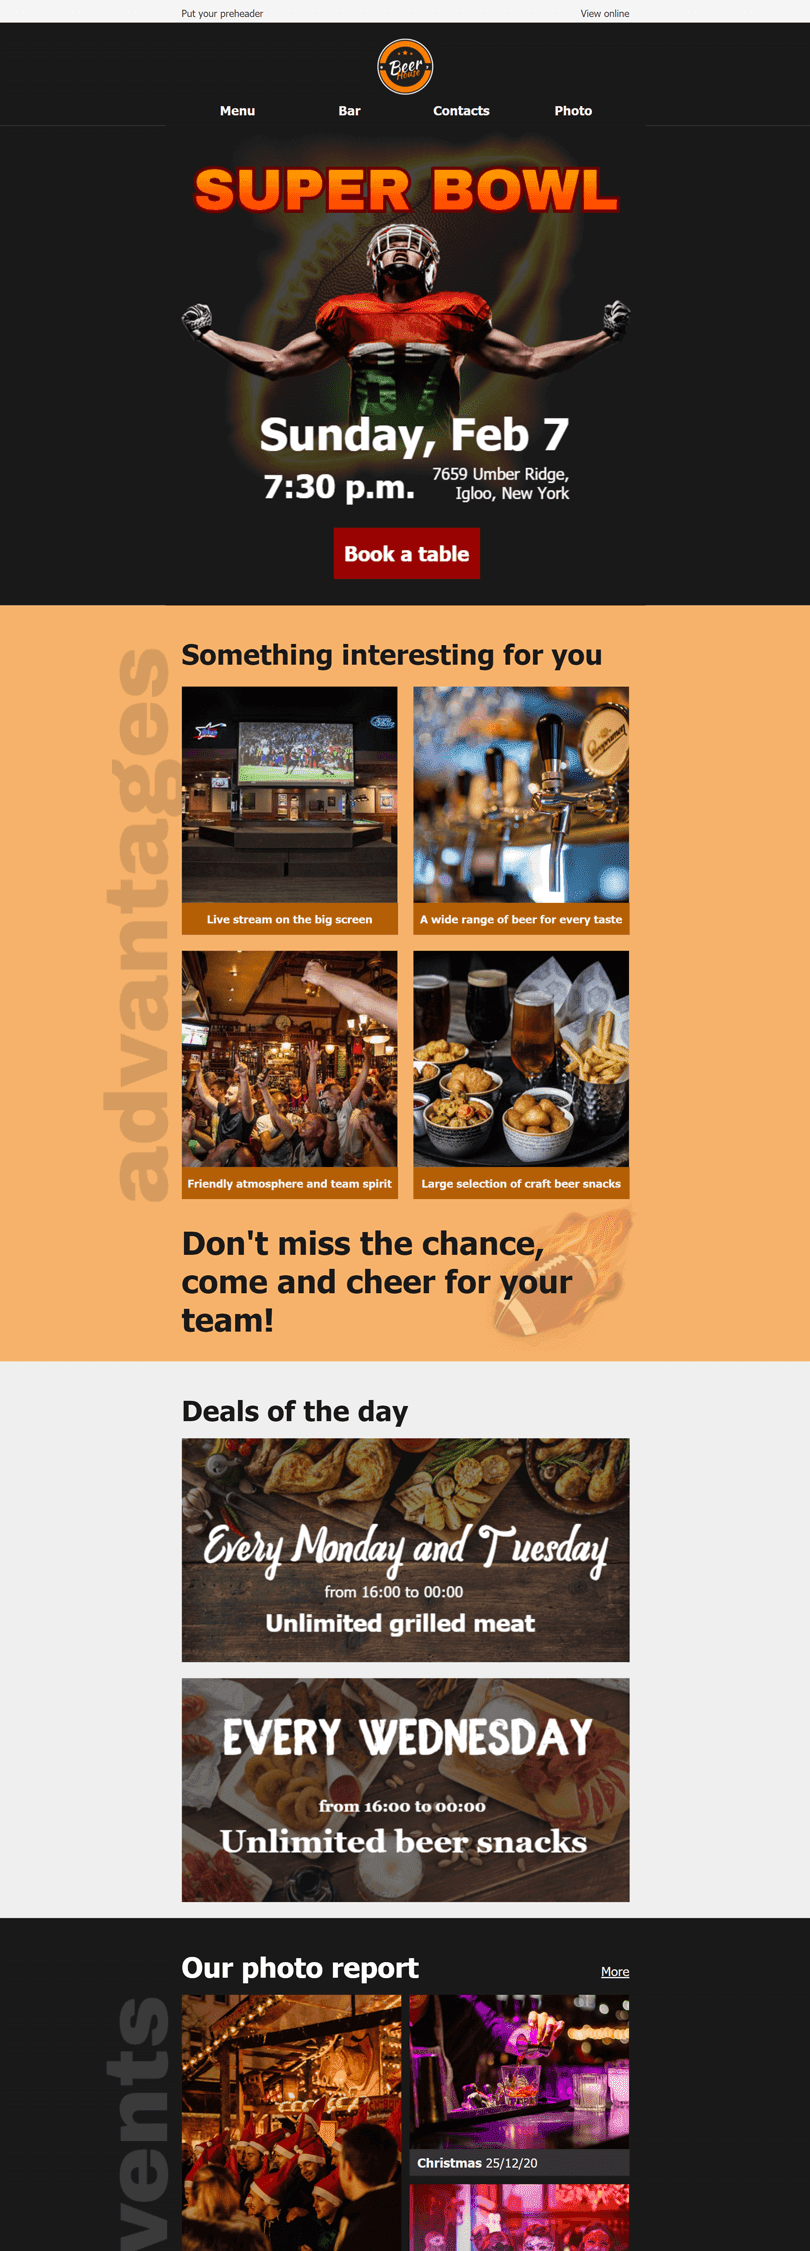 Super Bowl Email Template «Beer house» for Sports industry desktop view